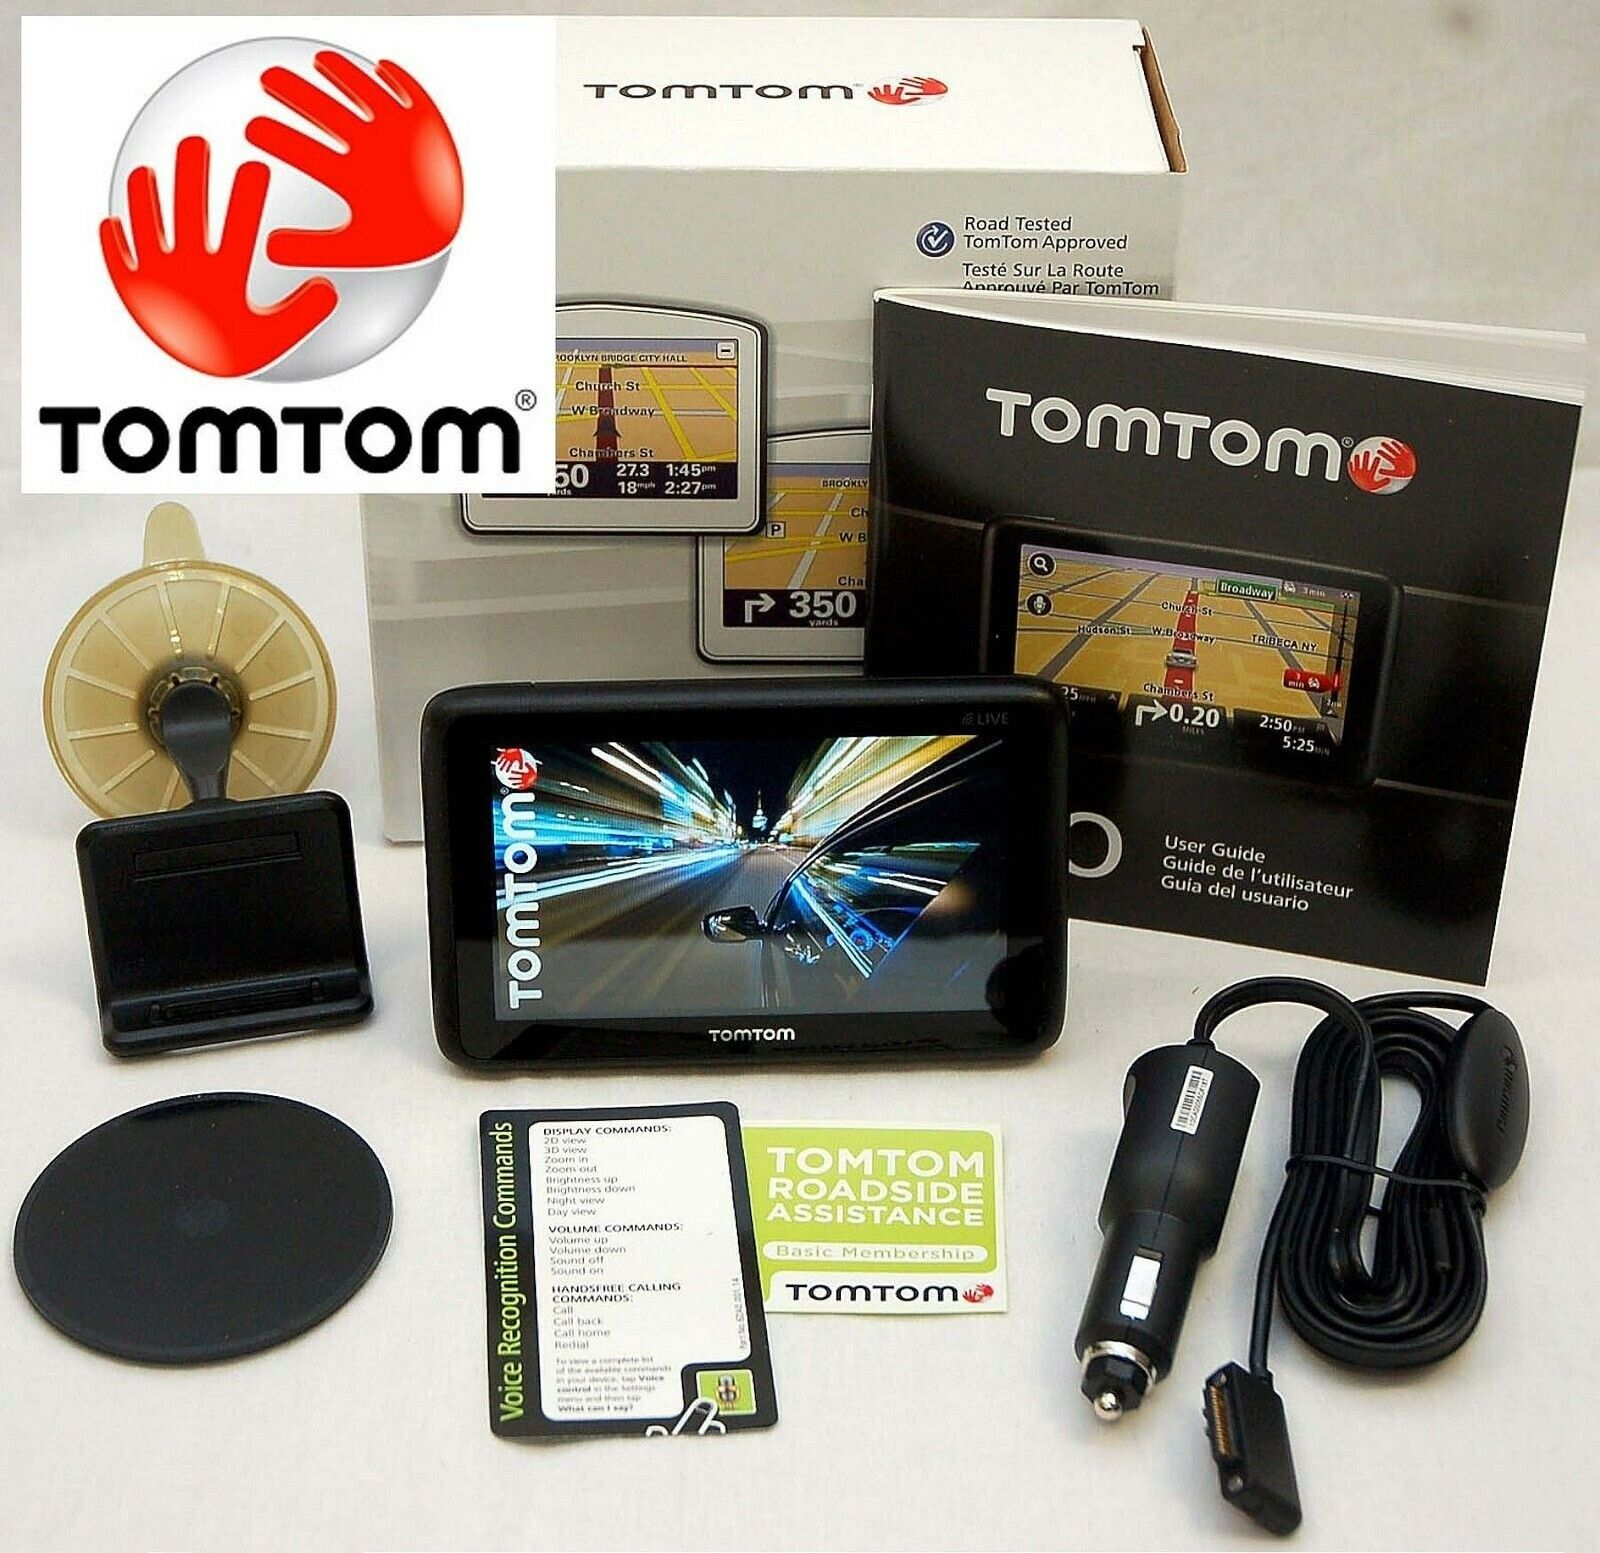 NEW In Box TomTom GO TM WTE World Traveler Car GPS USA Europe - Tomtom gps usa map download free